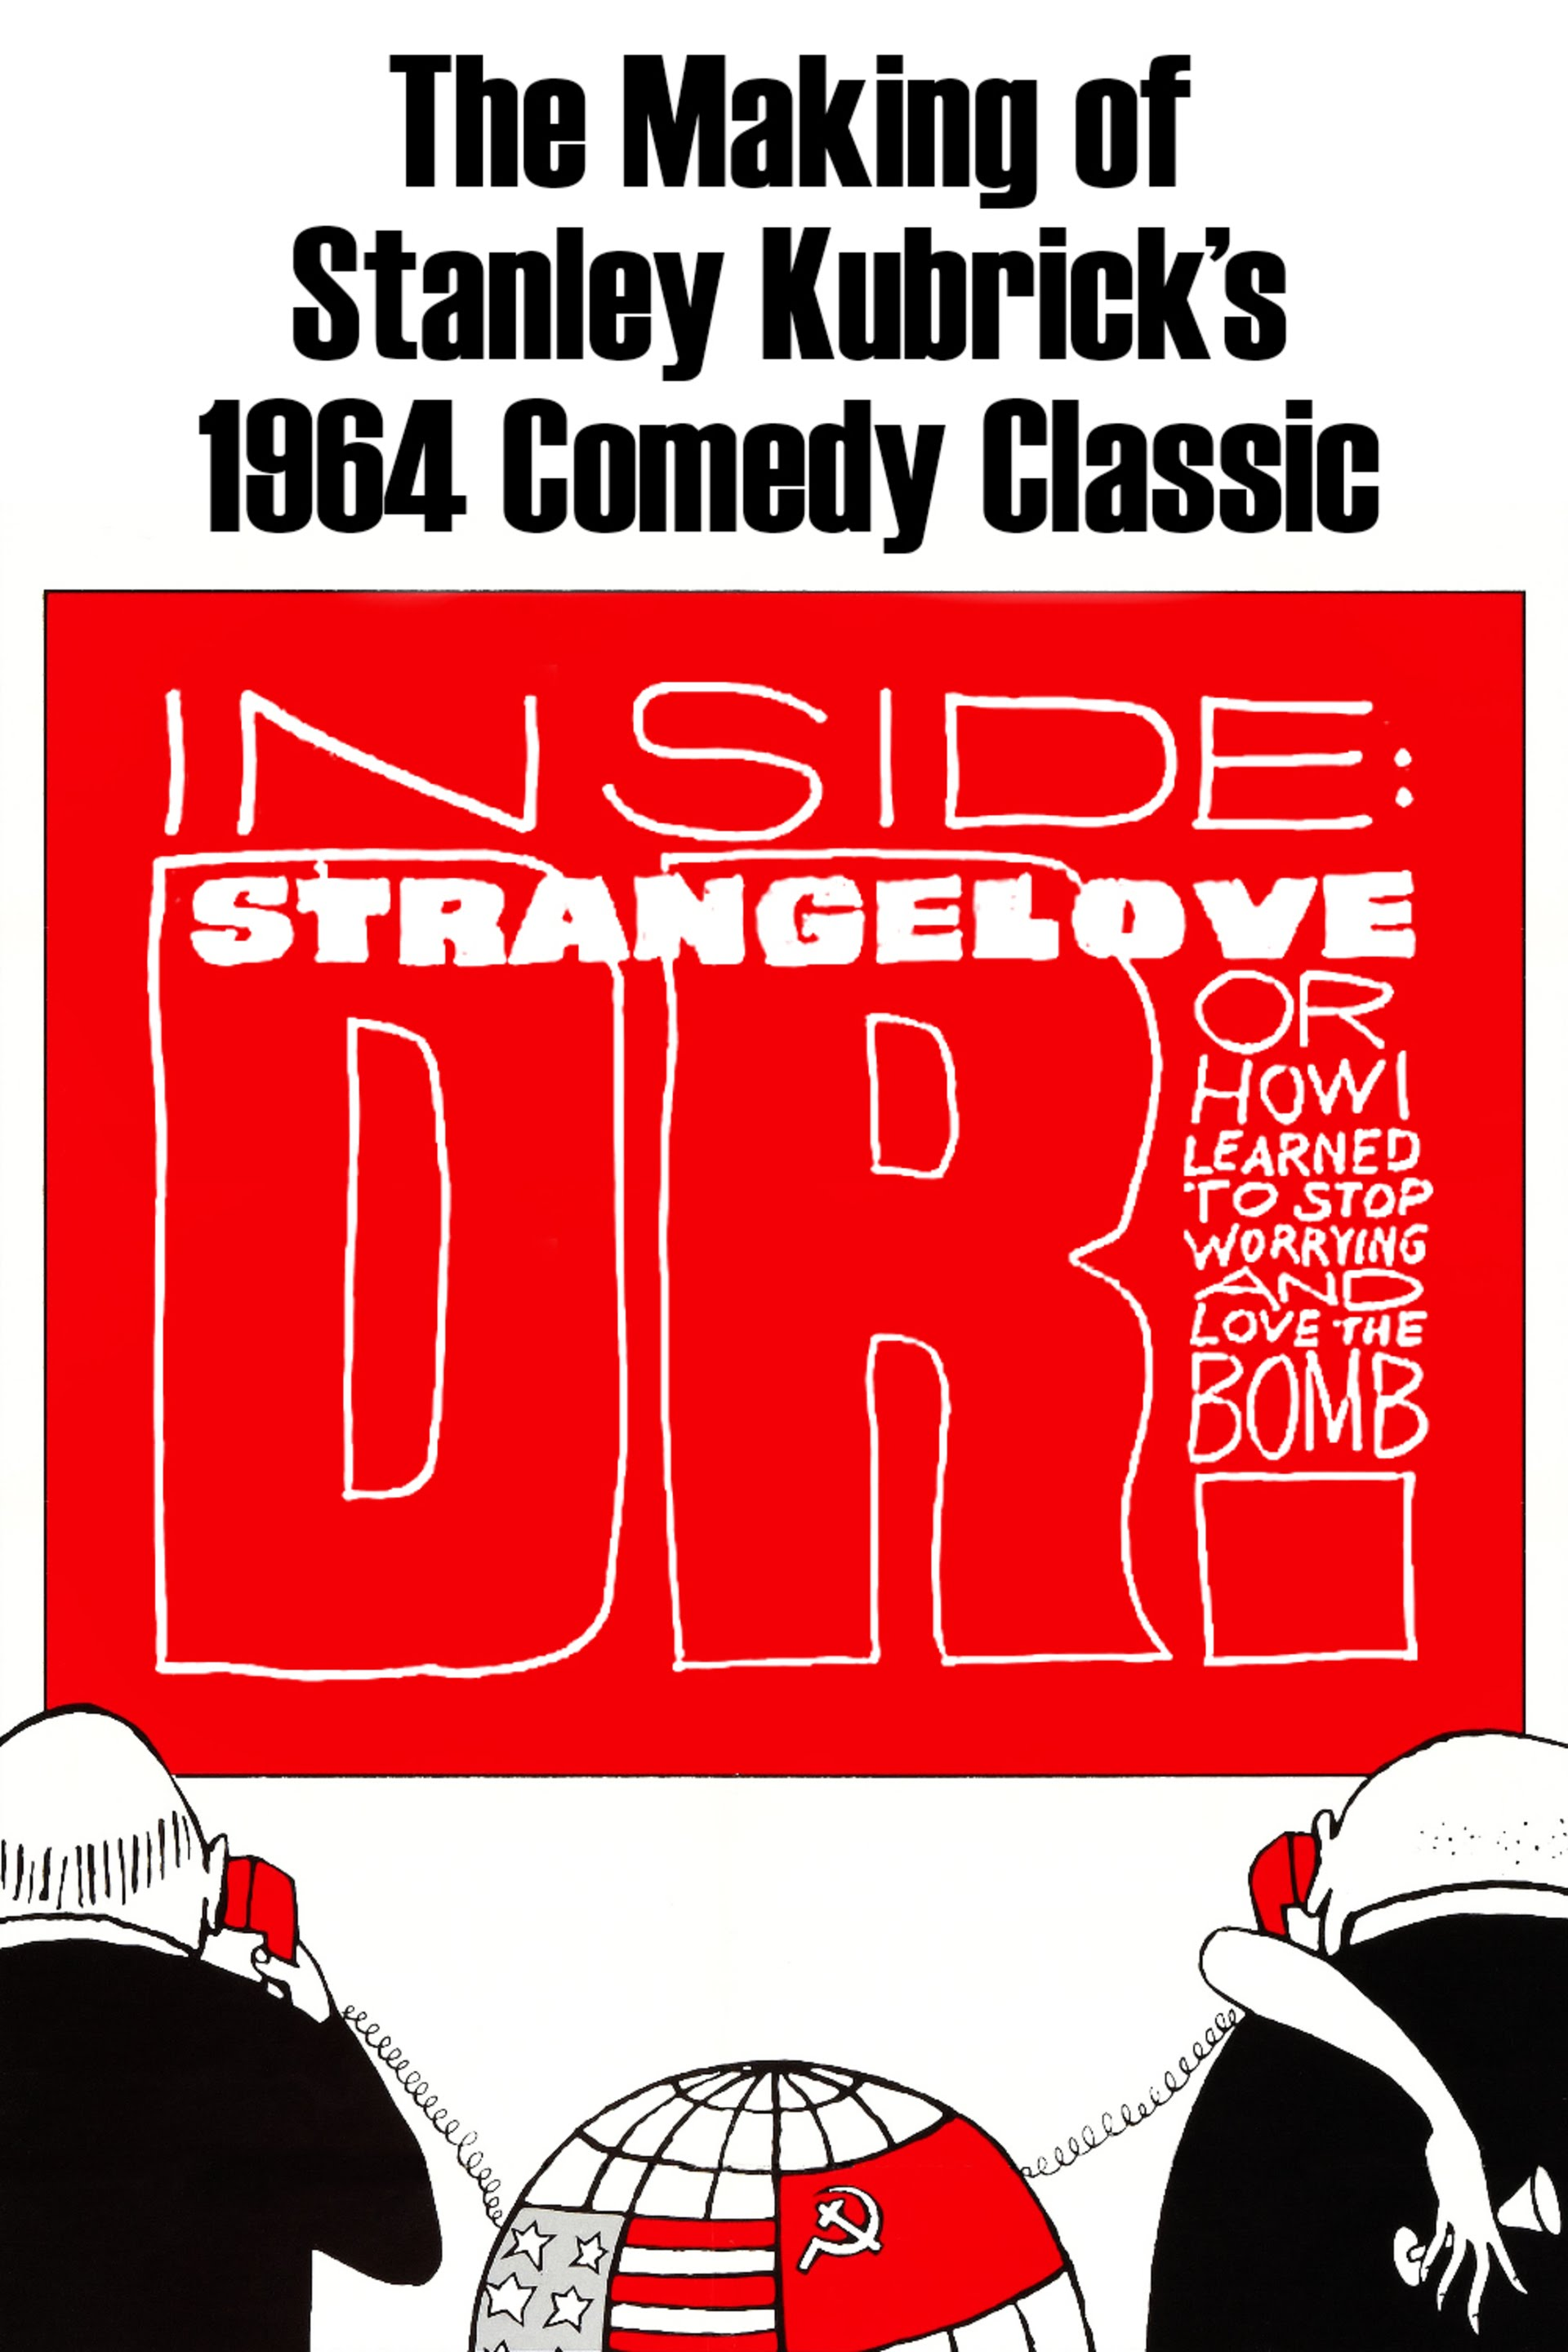 Inside: 'Dr. Strangelove or How I Learned to Stop Worrying and Love the Bomb' (2000)